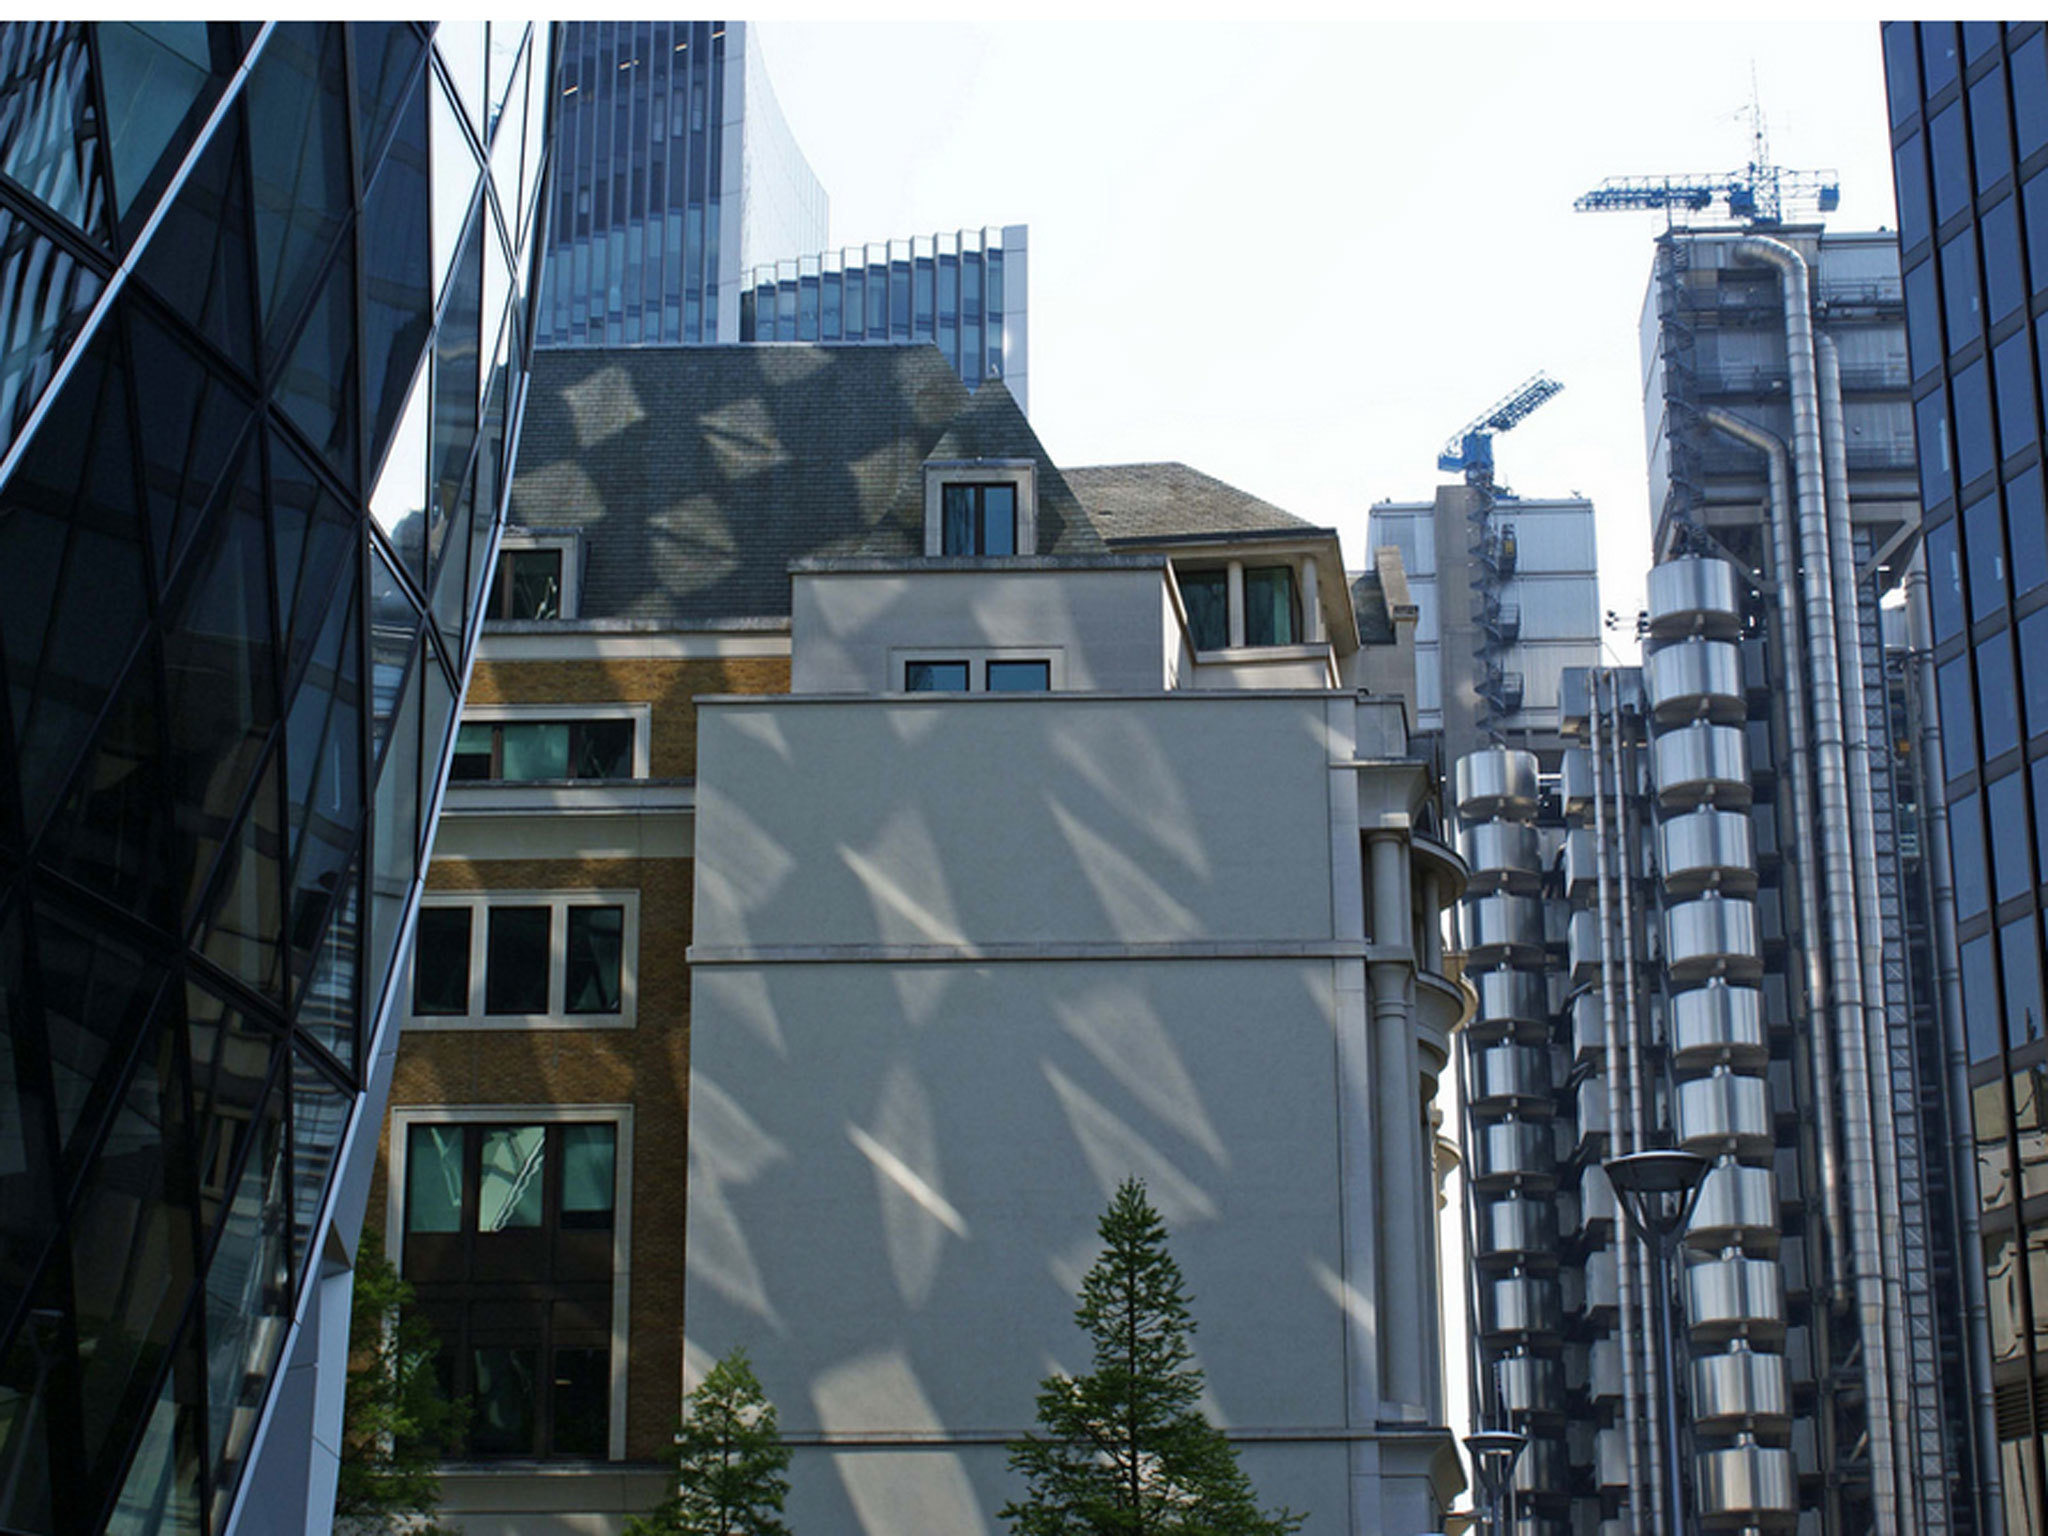 Reflections on the Gherkin, London